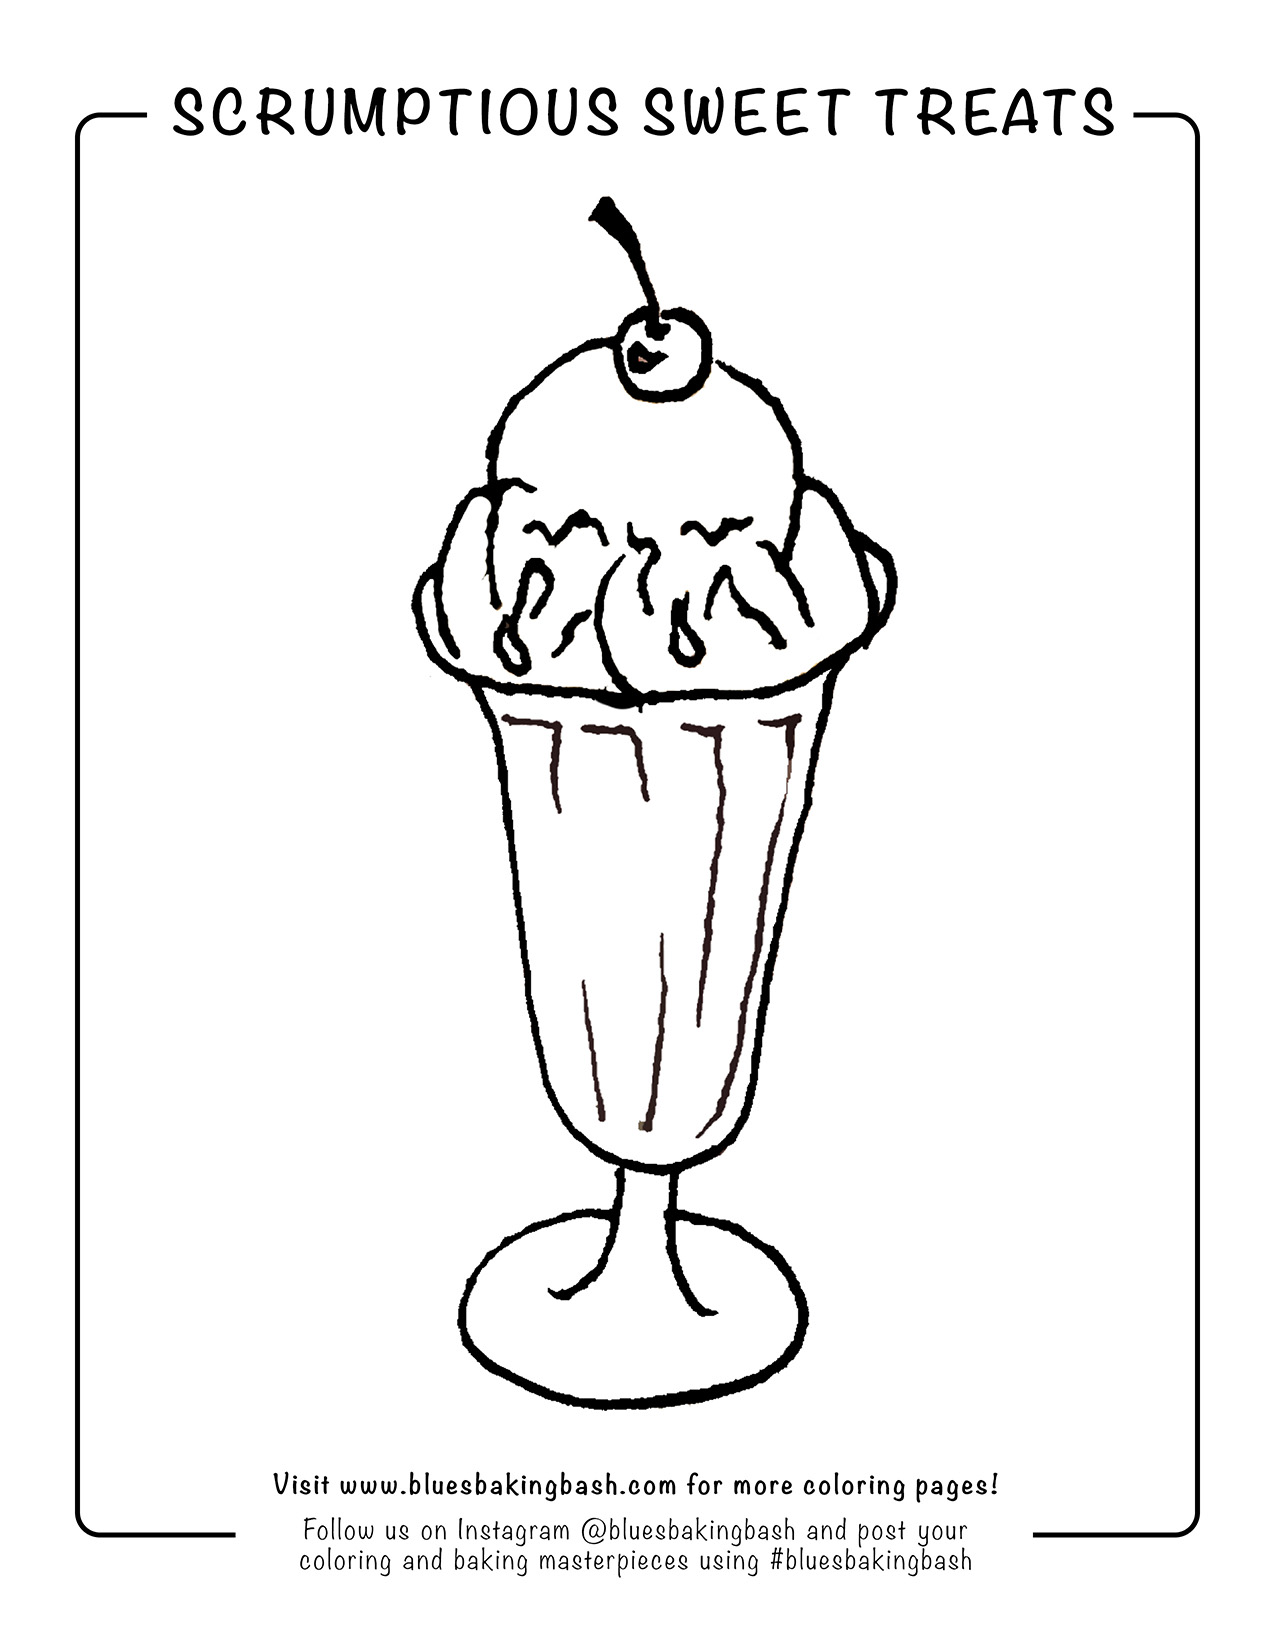 Blue's Ice Cream Sundae